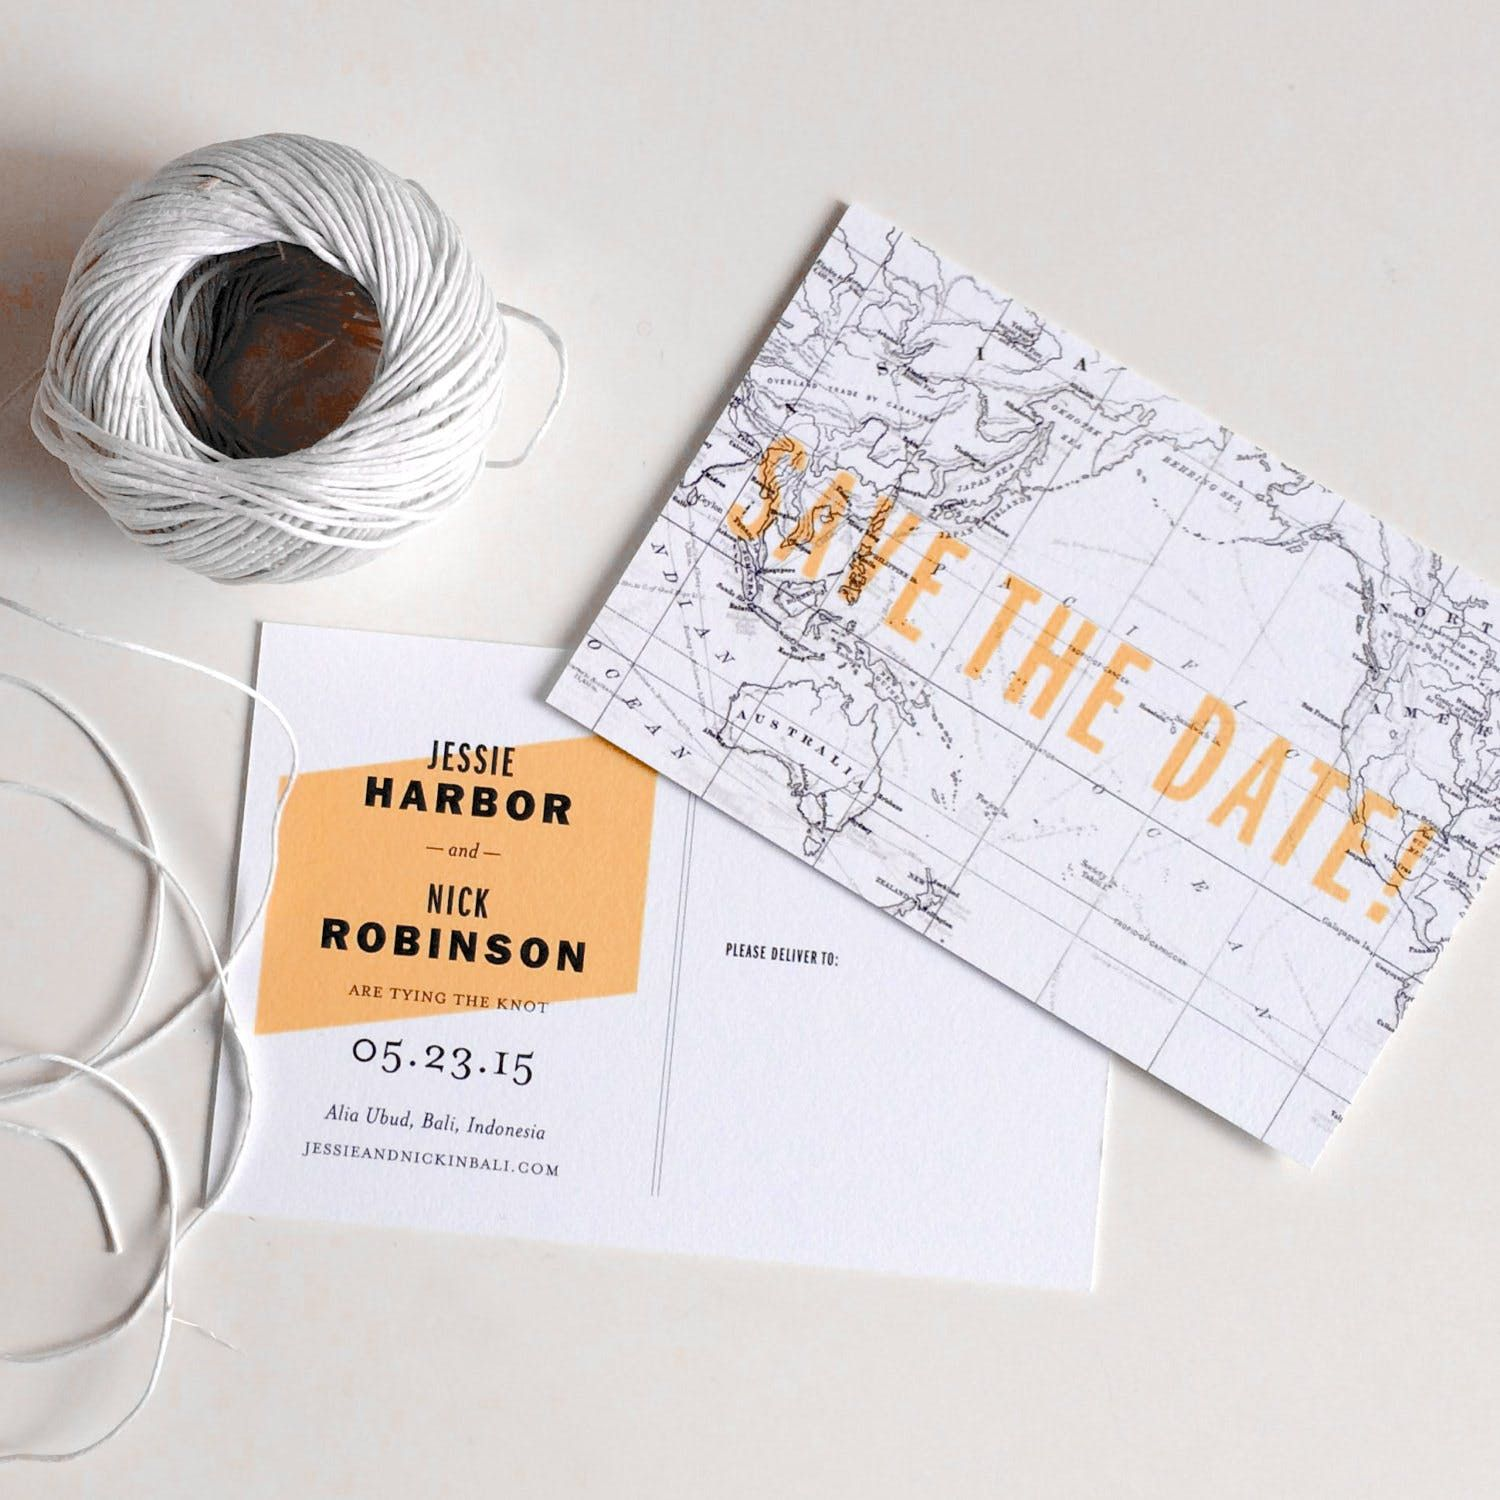 Save The Date Destination Wedding Invitations: 19 Map-Inspired Wedding Invitations